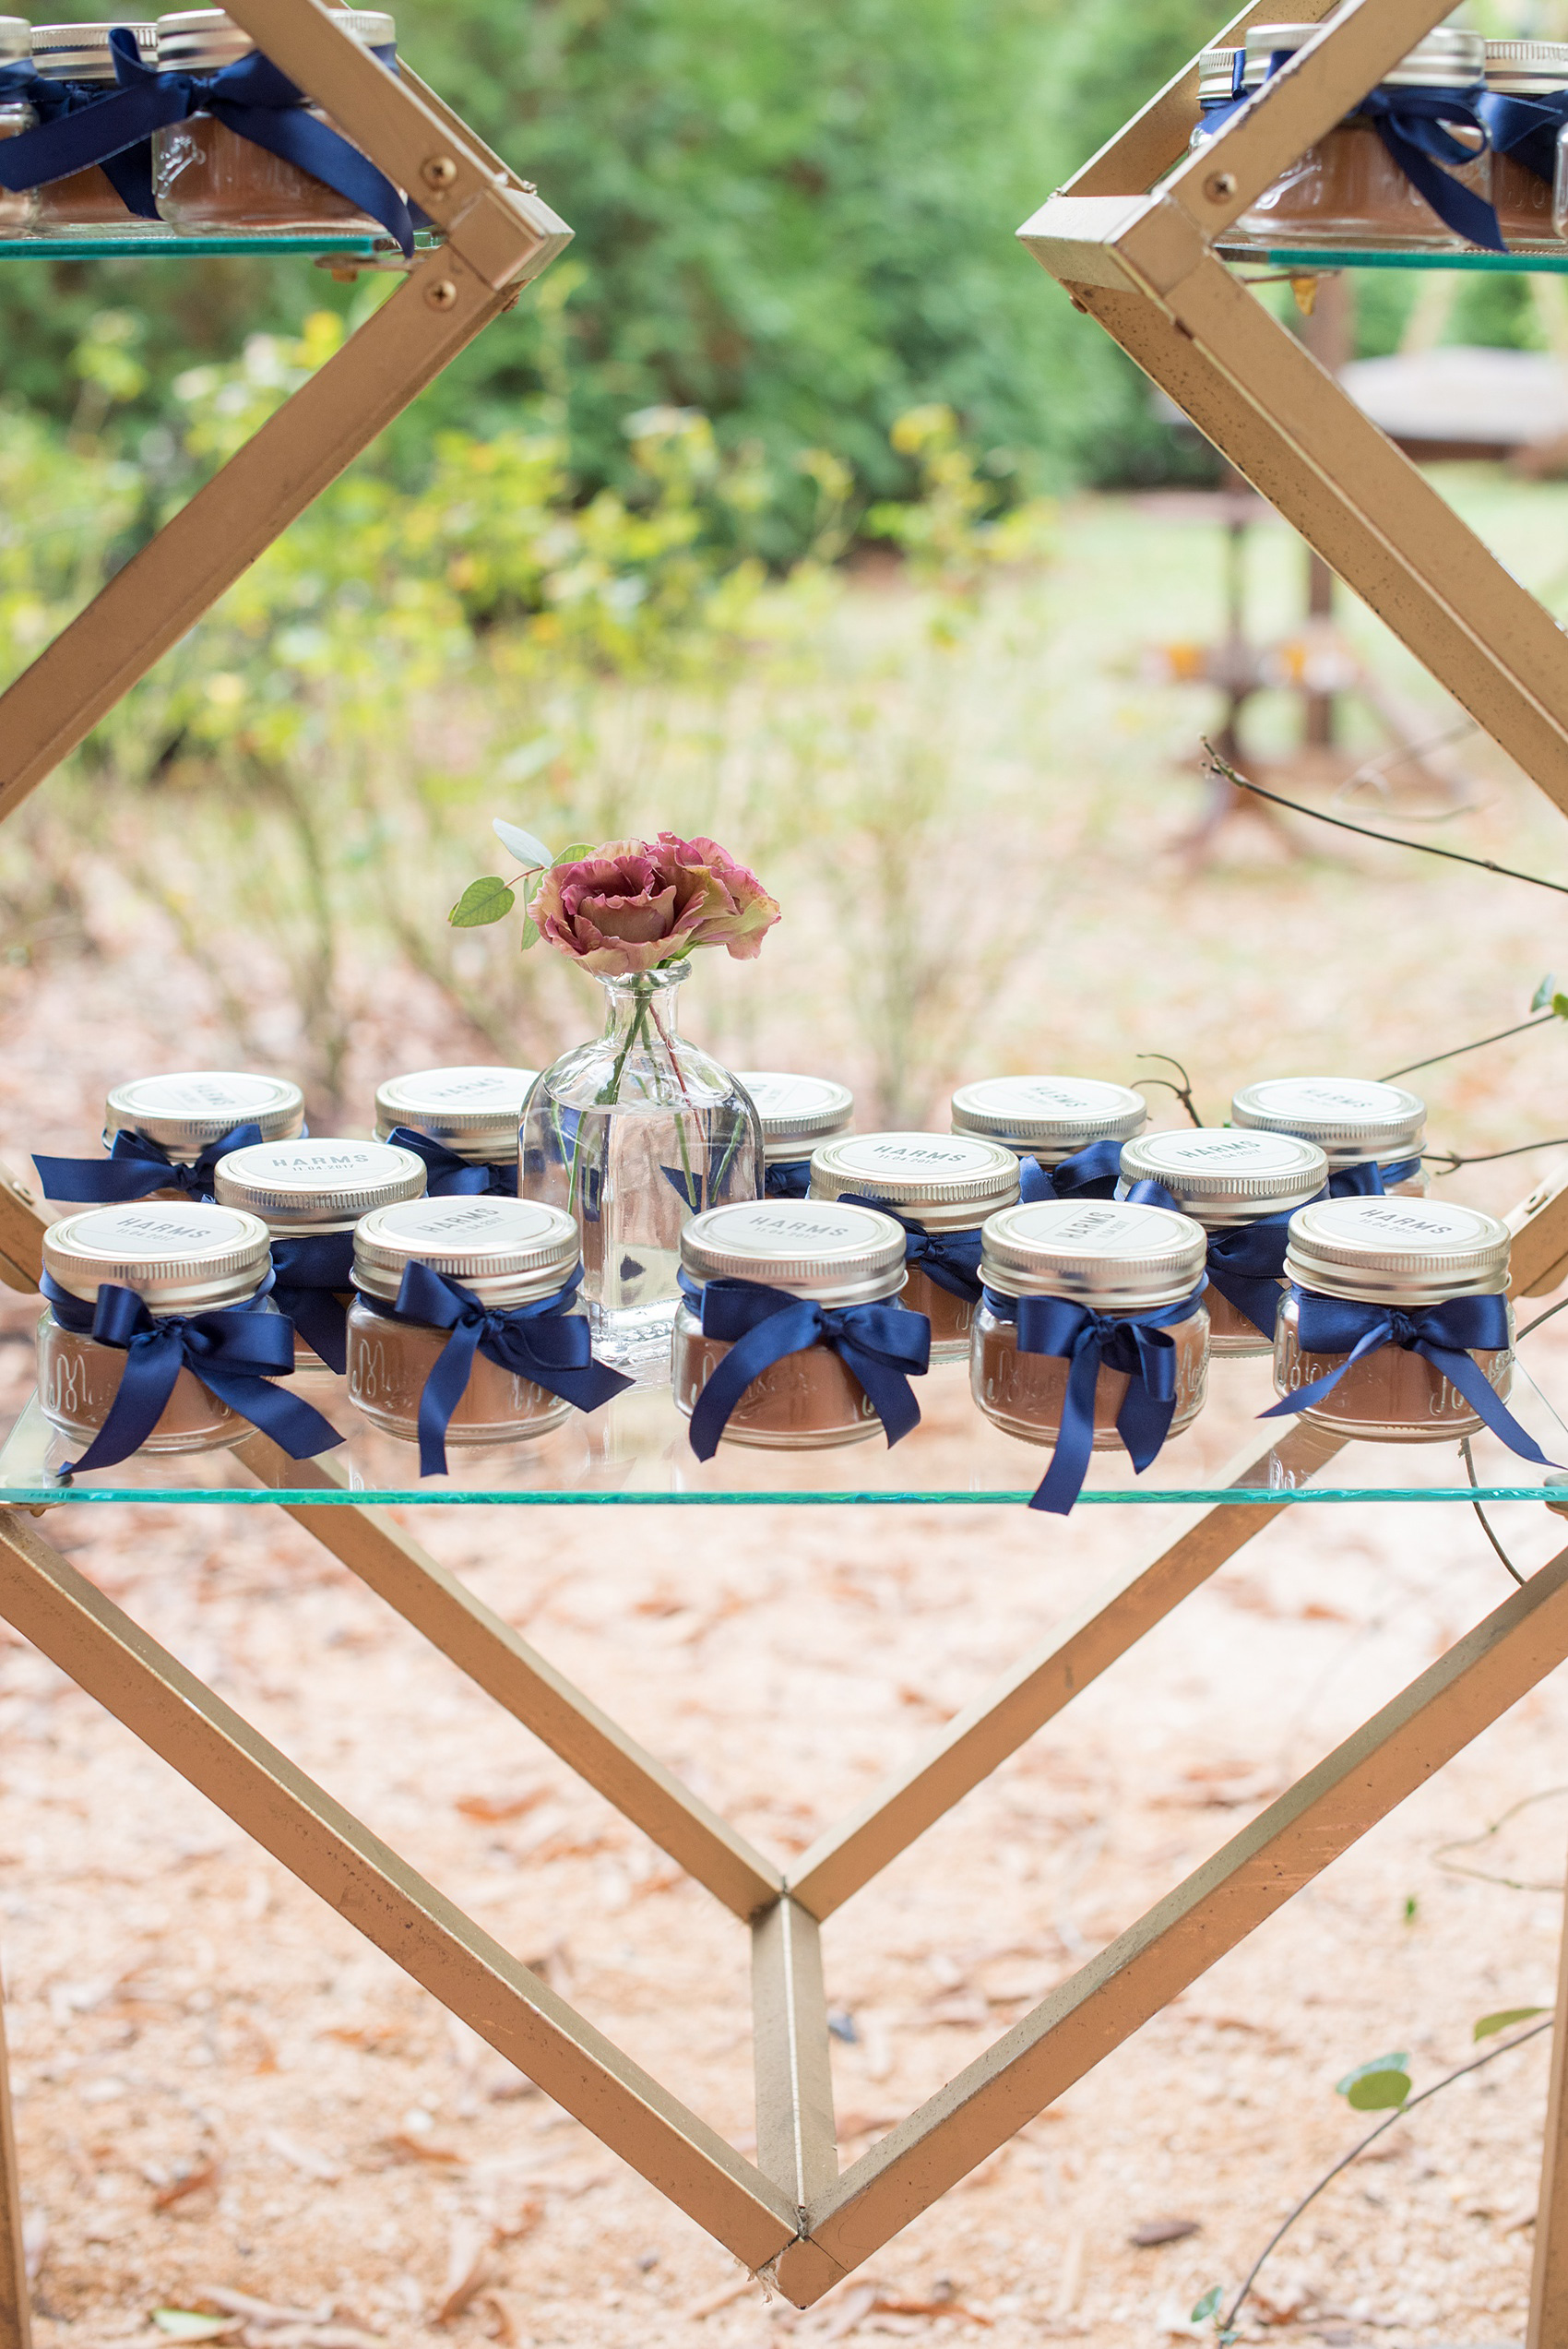 Mikkel Paige Photography photos from a wedding at Leslie-Alford Mims House in North Carolina. Picture of the gifts on a geometric metal display with blue ribbons and custom tags.